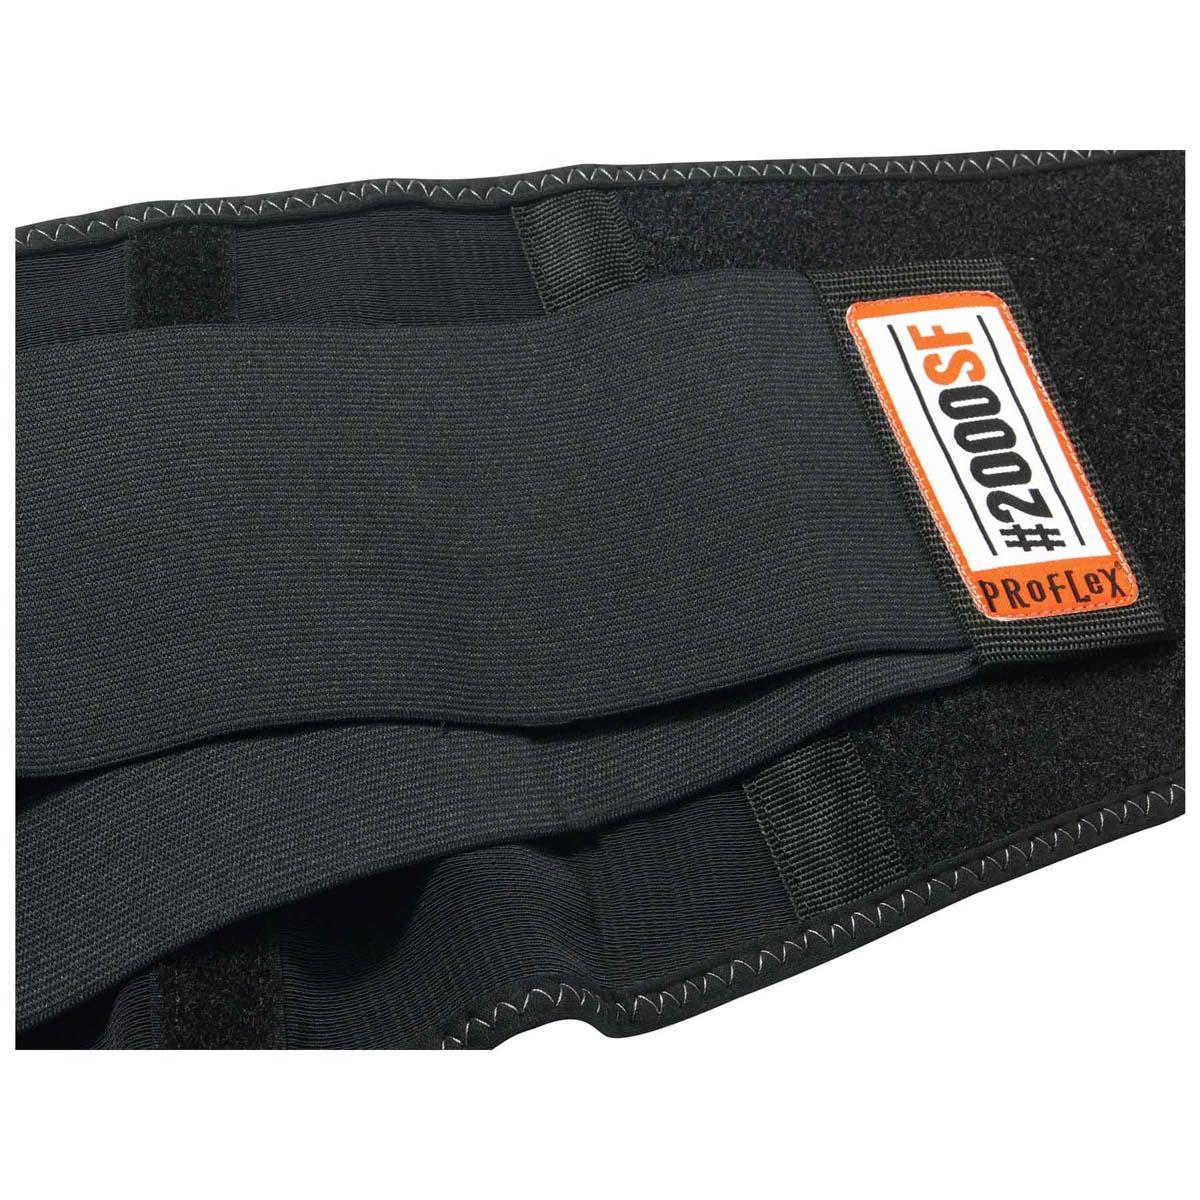 2000SF L Black High-Performance Back Support